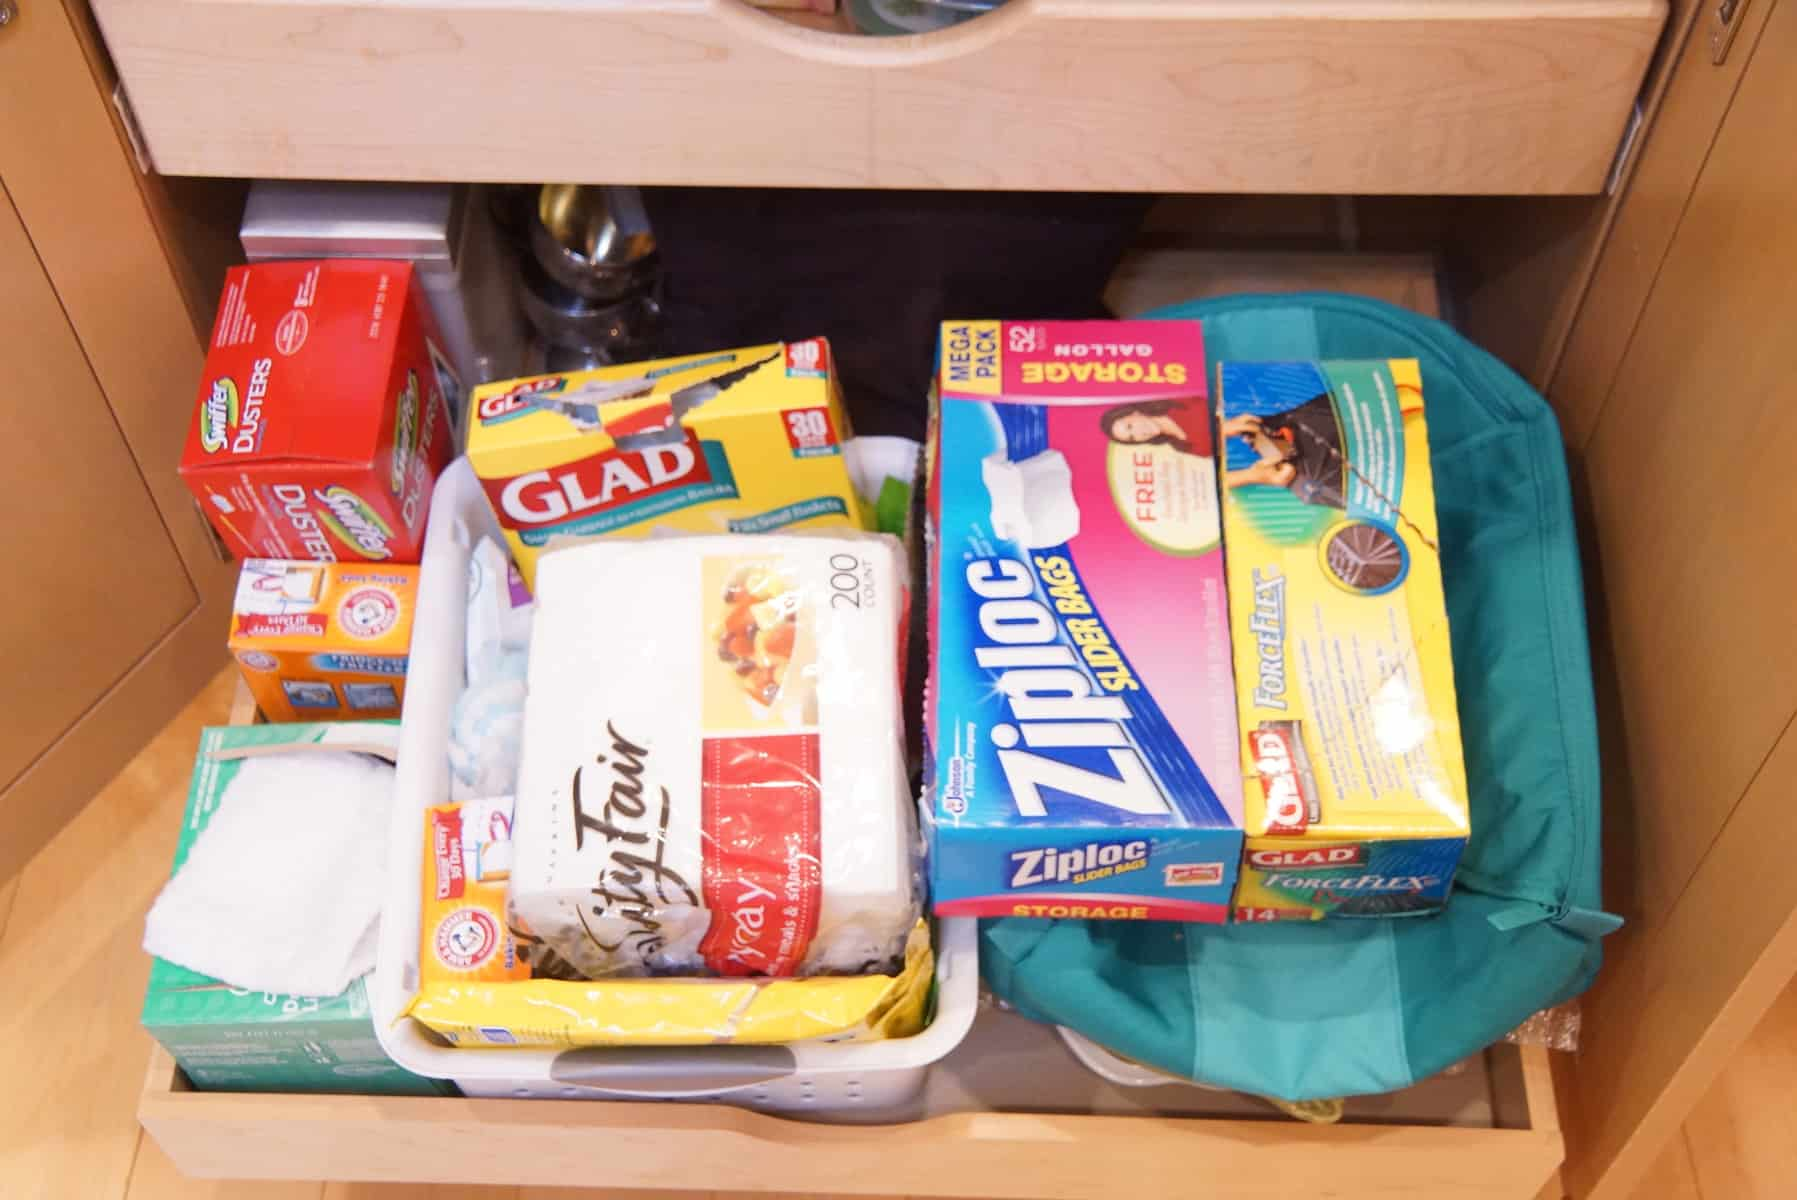 Organizing Kitchen How To Build Pull Out Shelves For Kitchen Cabinets Diy Pullout